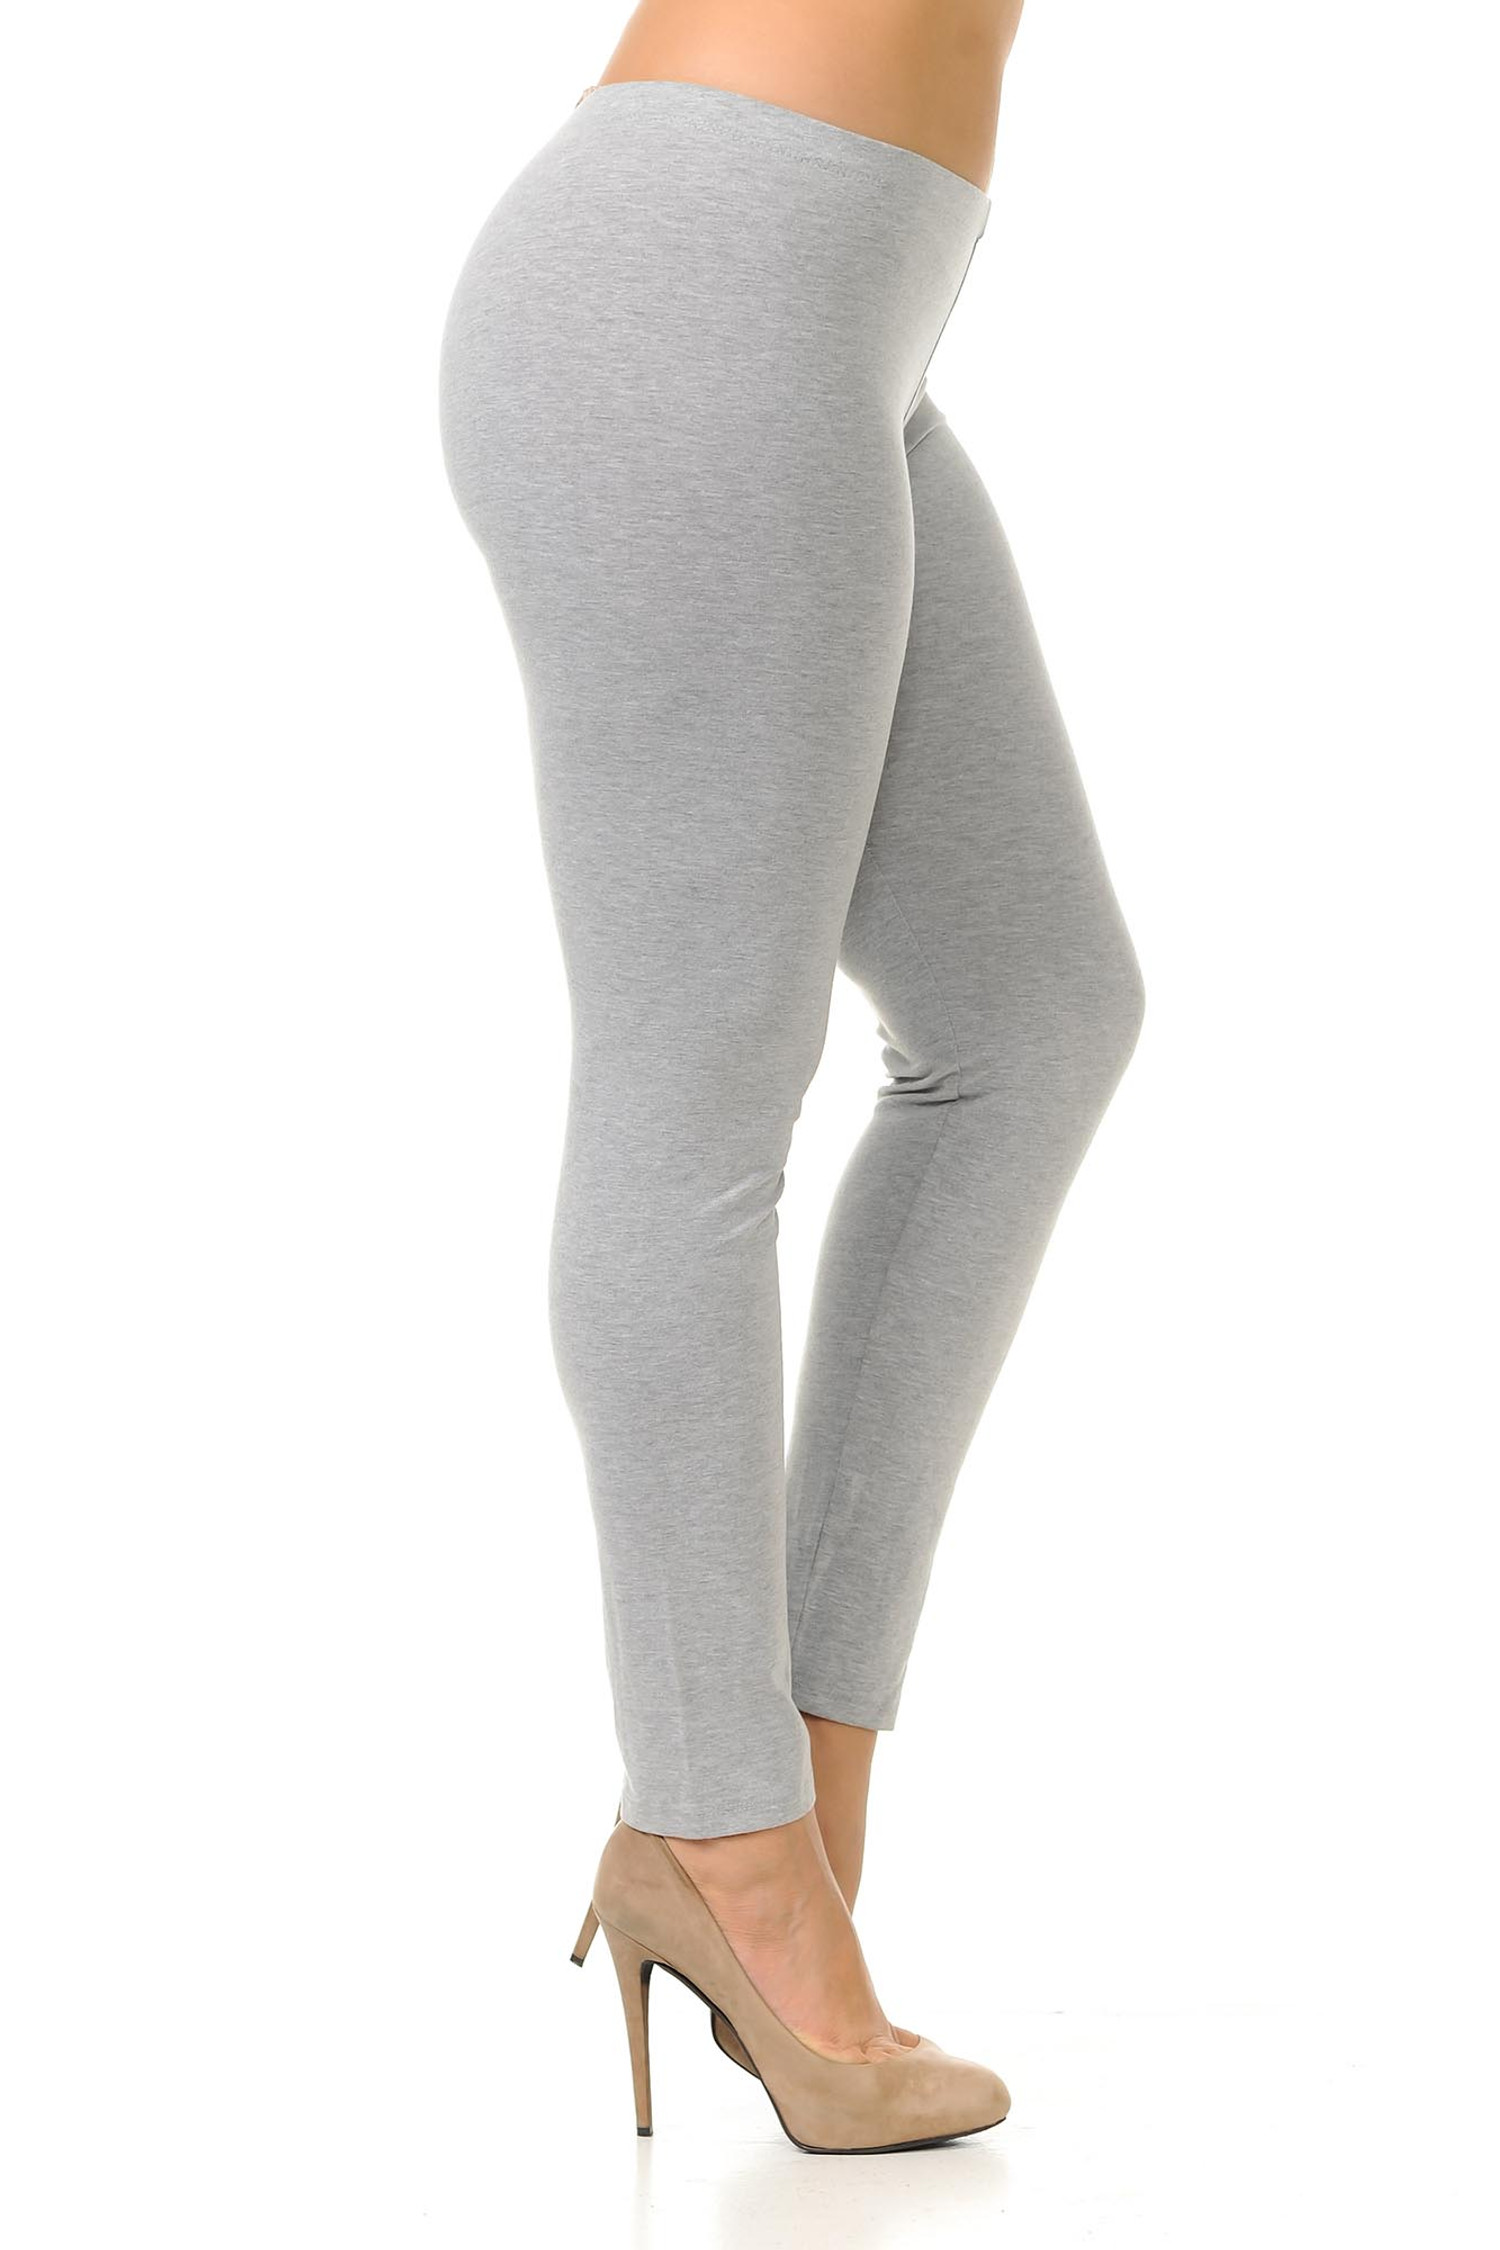 Right side view of heather gray plus size USA Cotton Full Length Leggings.